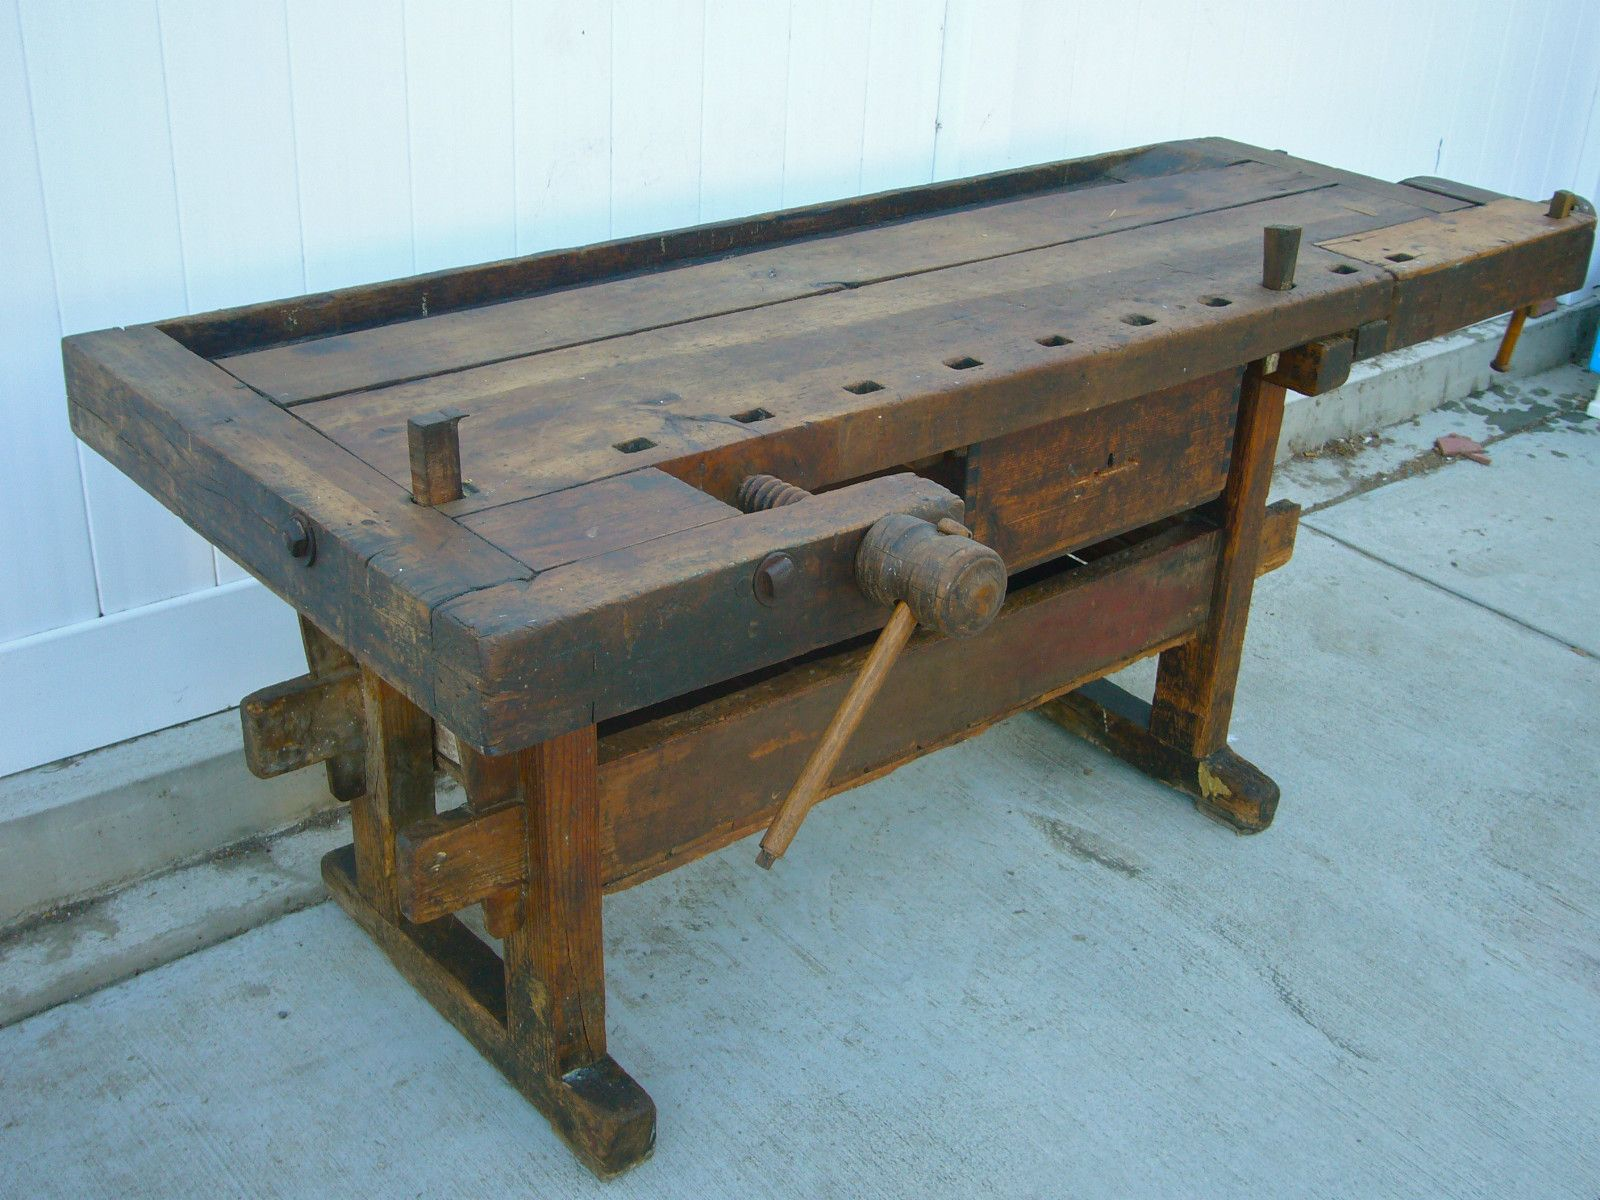 Woodworking Tool Bench Fabulous Antique Wooden Carpenters Workbench With Vises